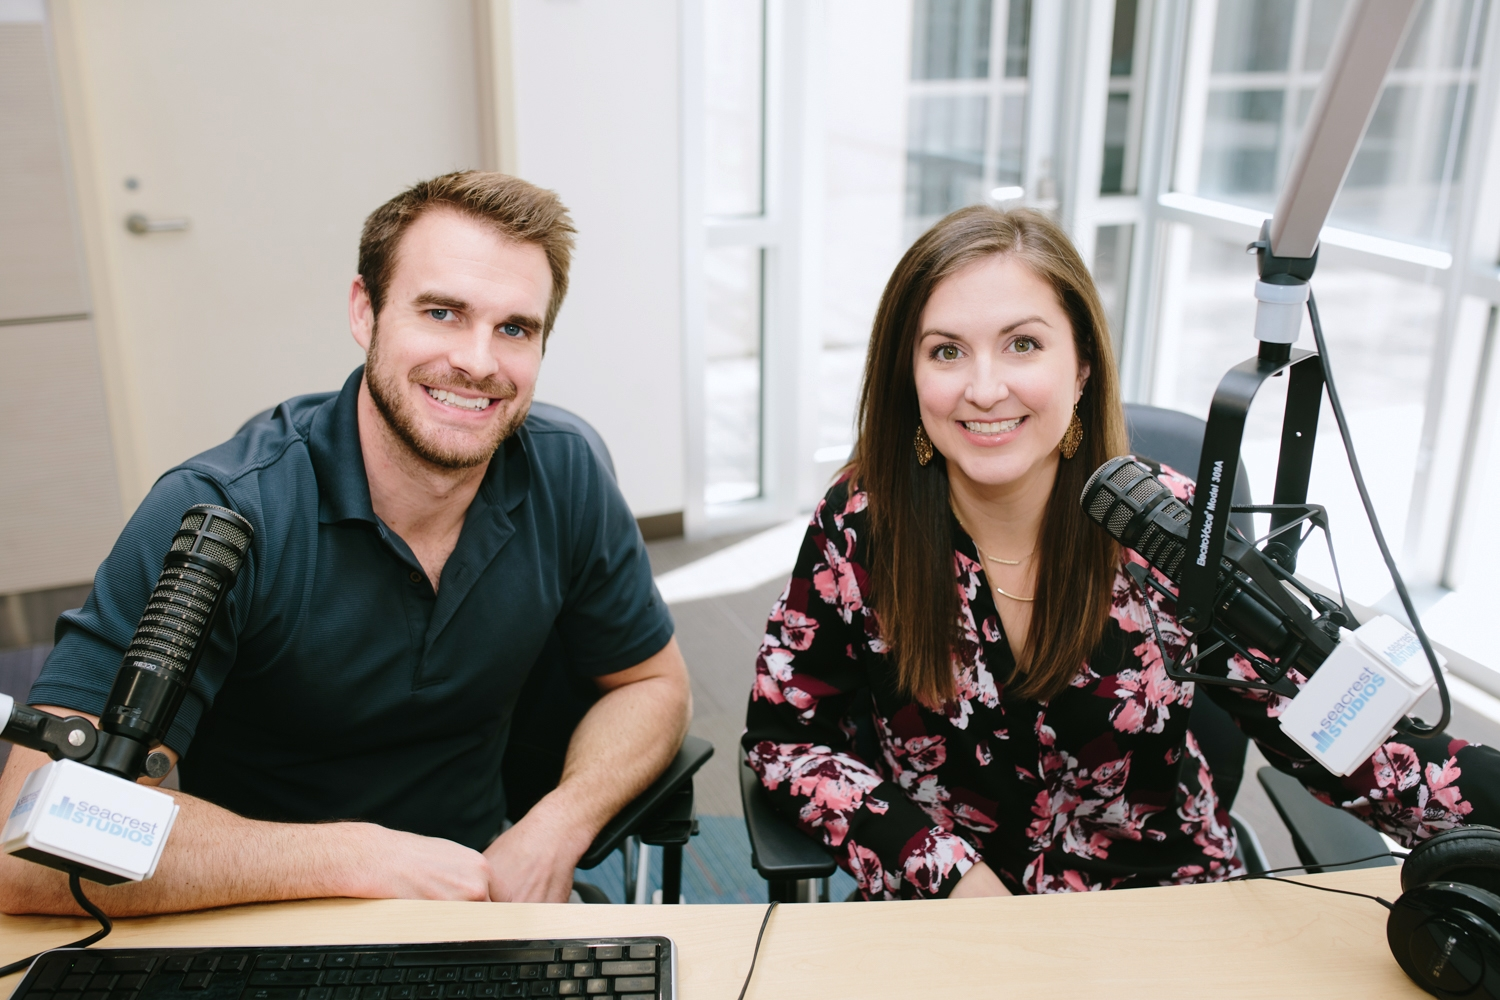 RSF SPOTLIGHT: Meet Our Dallas Studio Managers